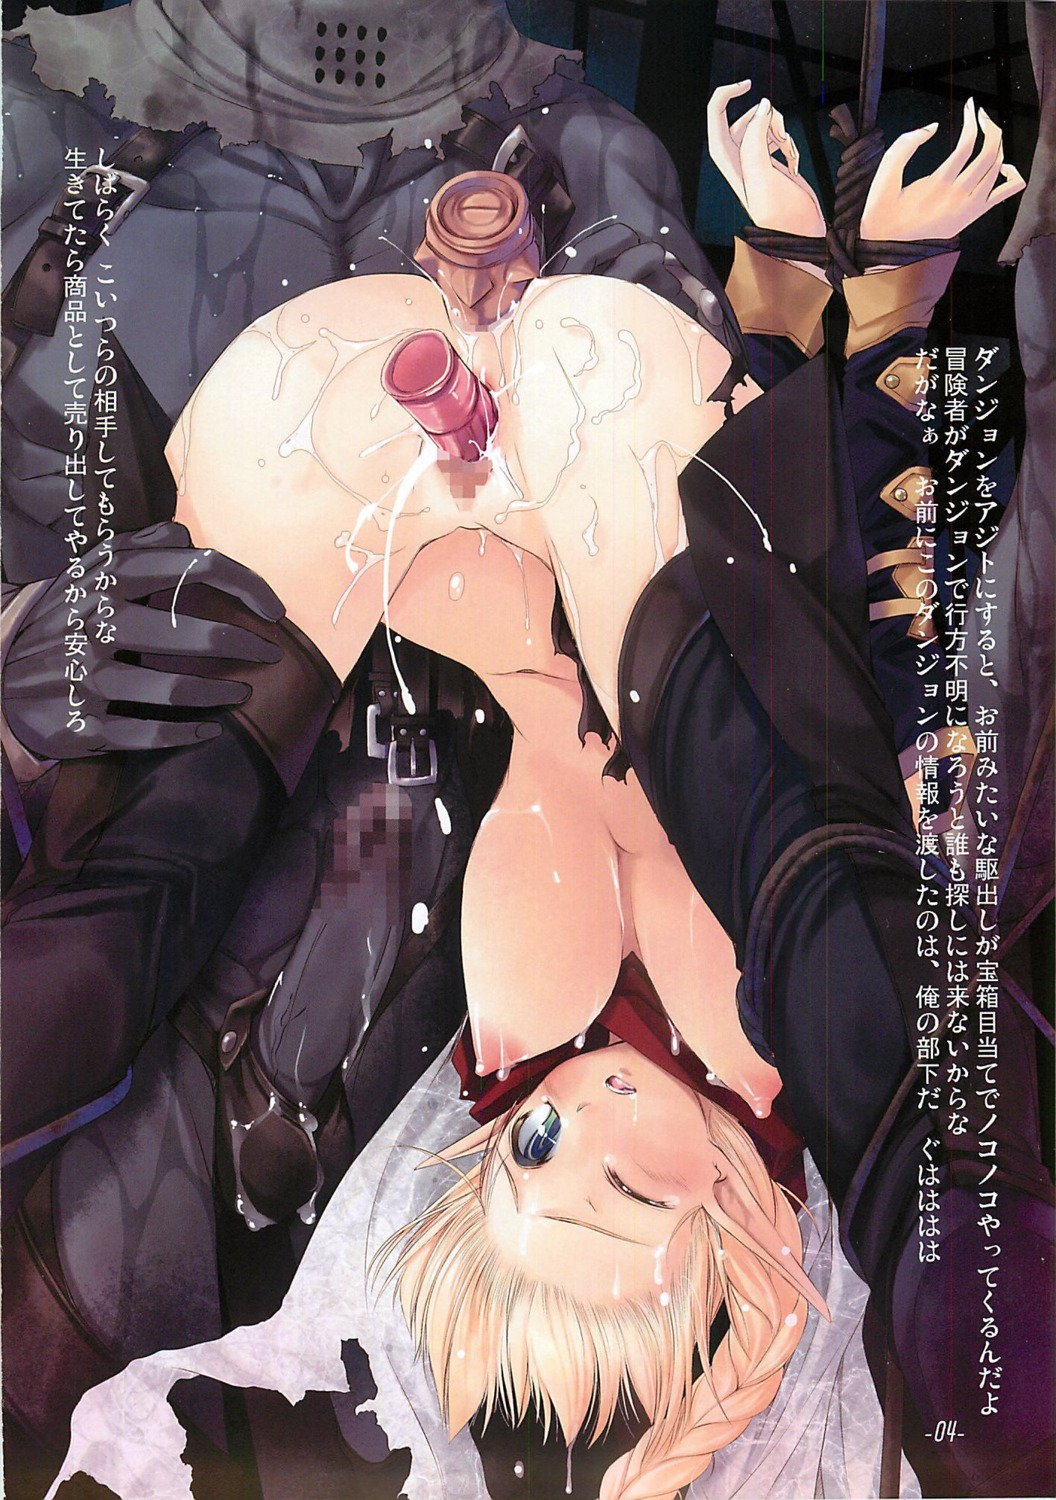 alem_gakan anal anus ass bondage censored dildo elf jpeg_artifacts kirishima_satoshi nipples no_bra nopan open_shirt penis pointy_ears pussy_juice scanning_artifacts torn_clothes underboob